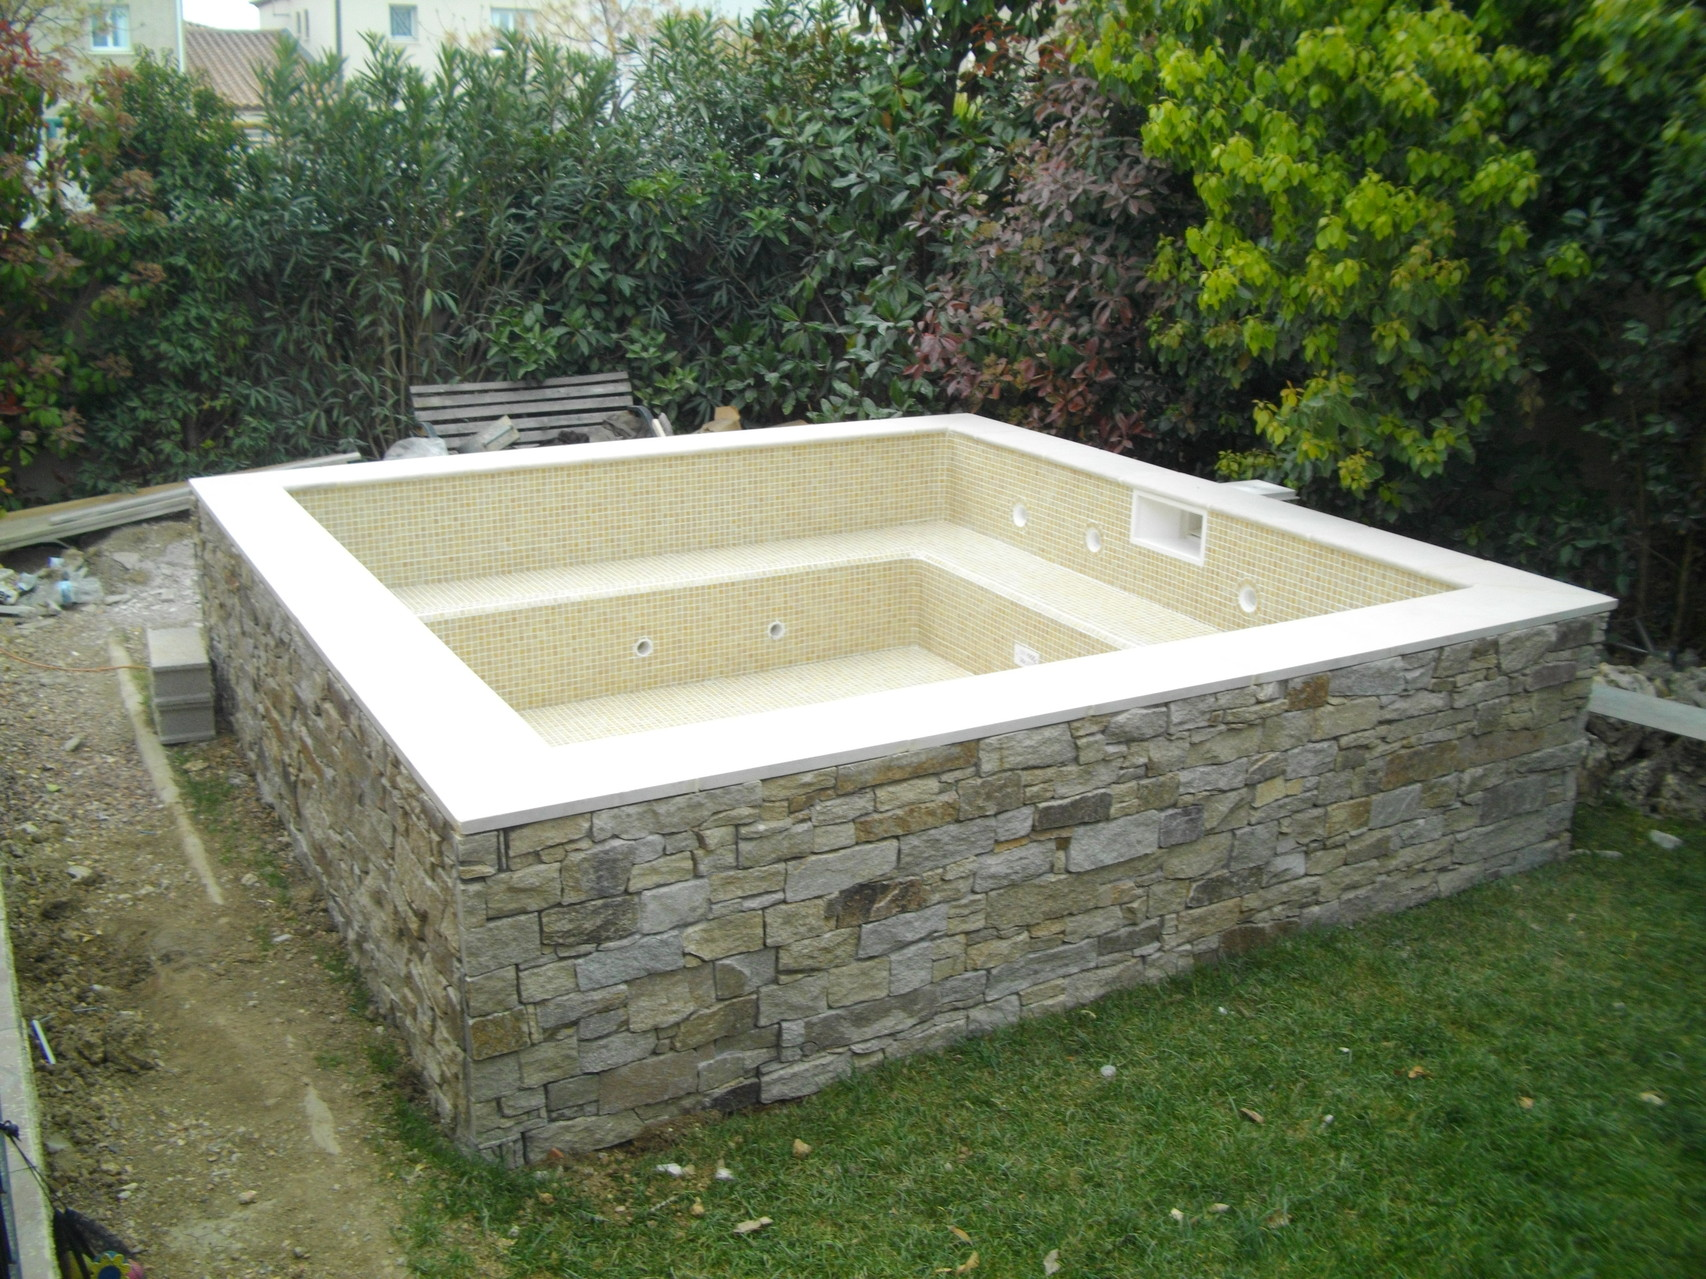 Design piscine bois semi enterree saint paul 2719 for Piscine hors sol semi enterree reglementation